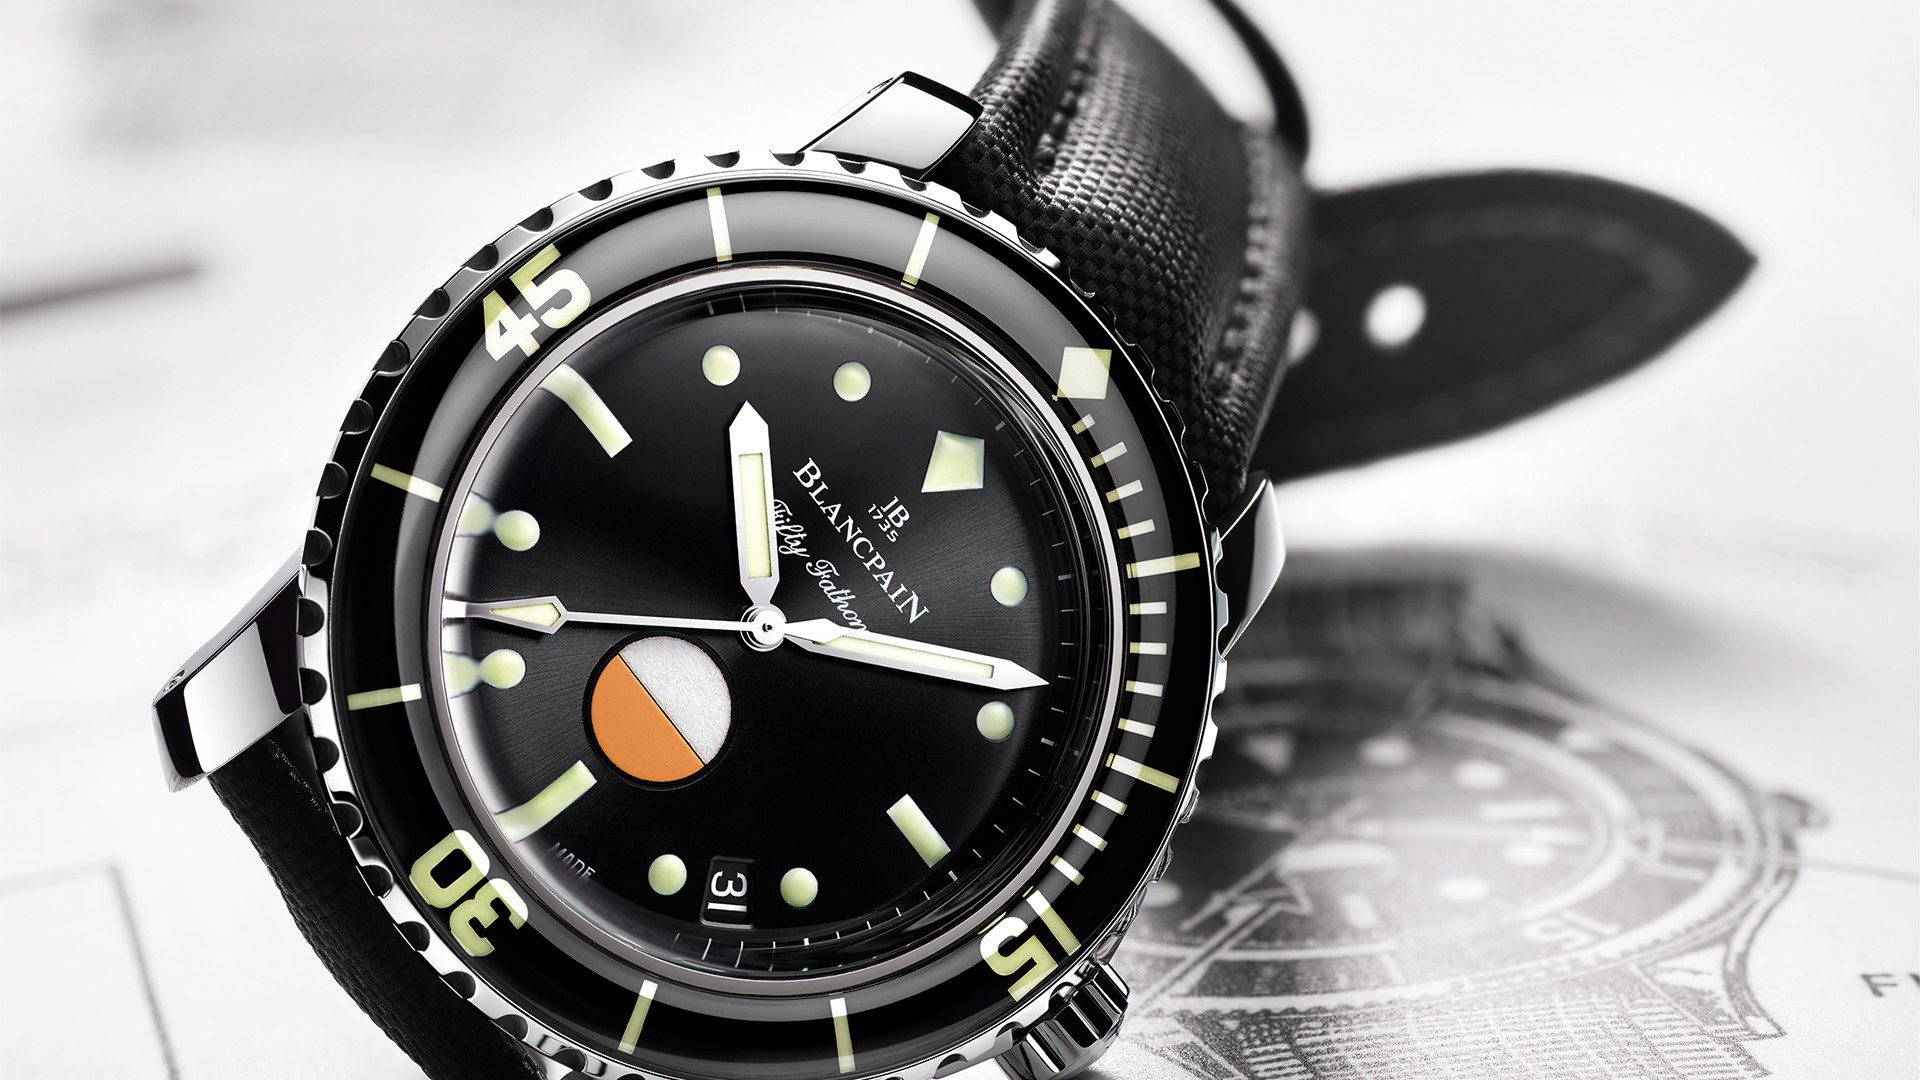 Blancpain Tribute To Fifty Fathoms MilSpec watch